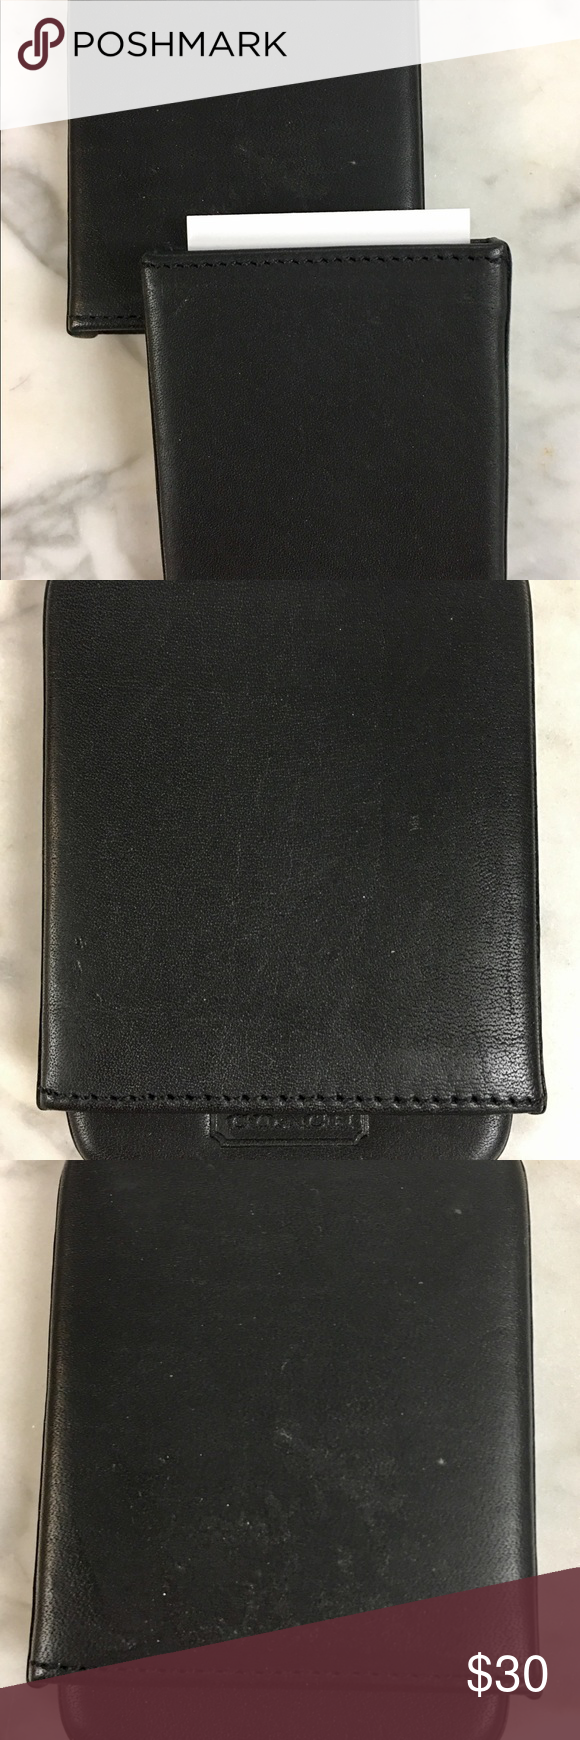 COACH hard leather Card Holder   Key card holder, Smooth leather and ...